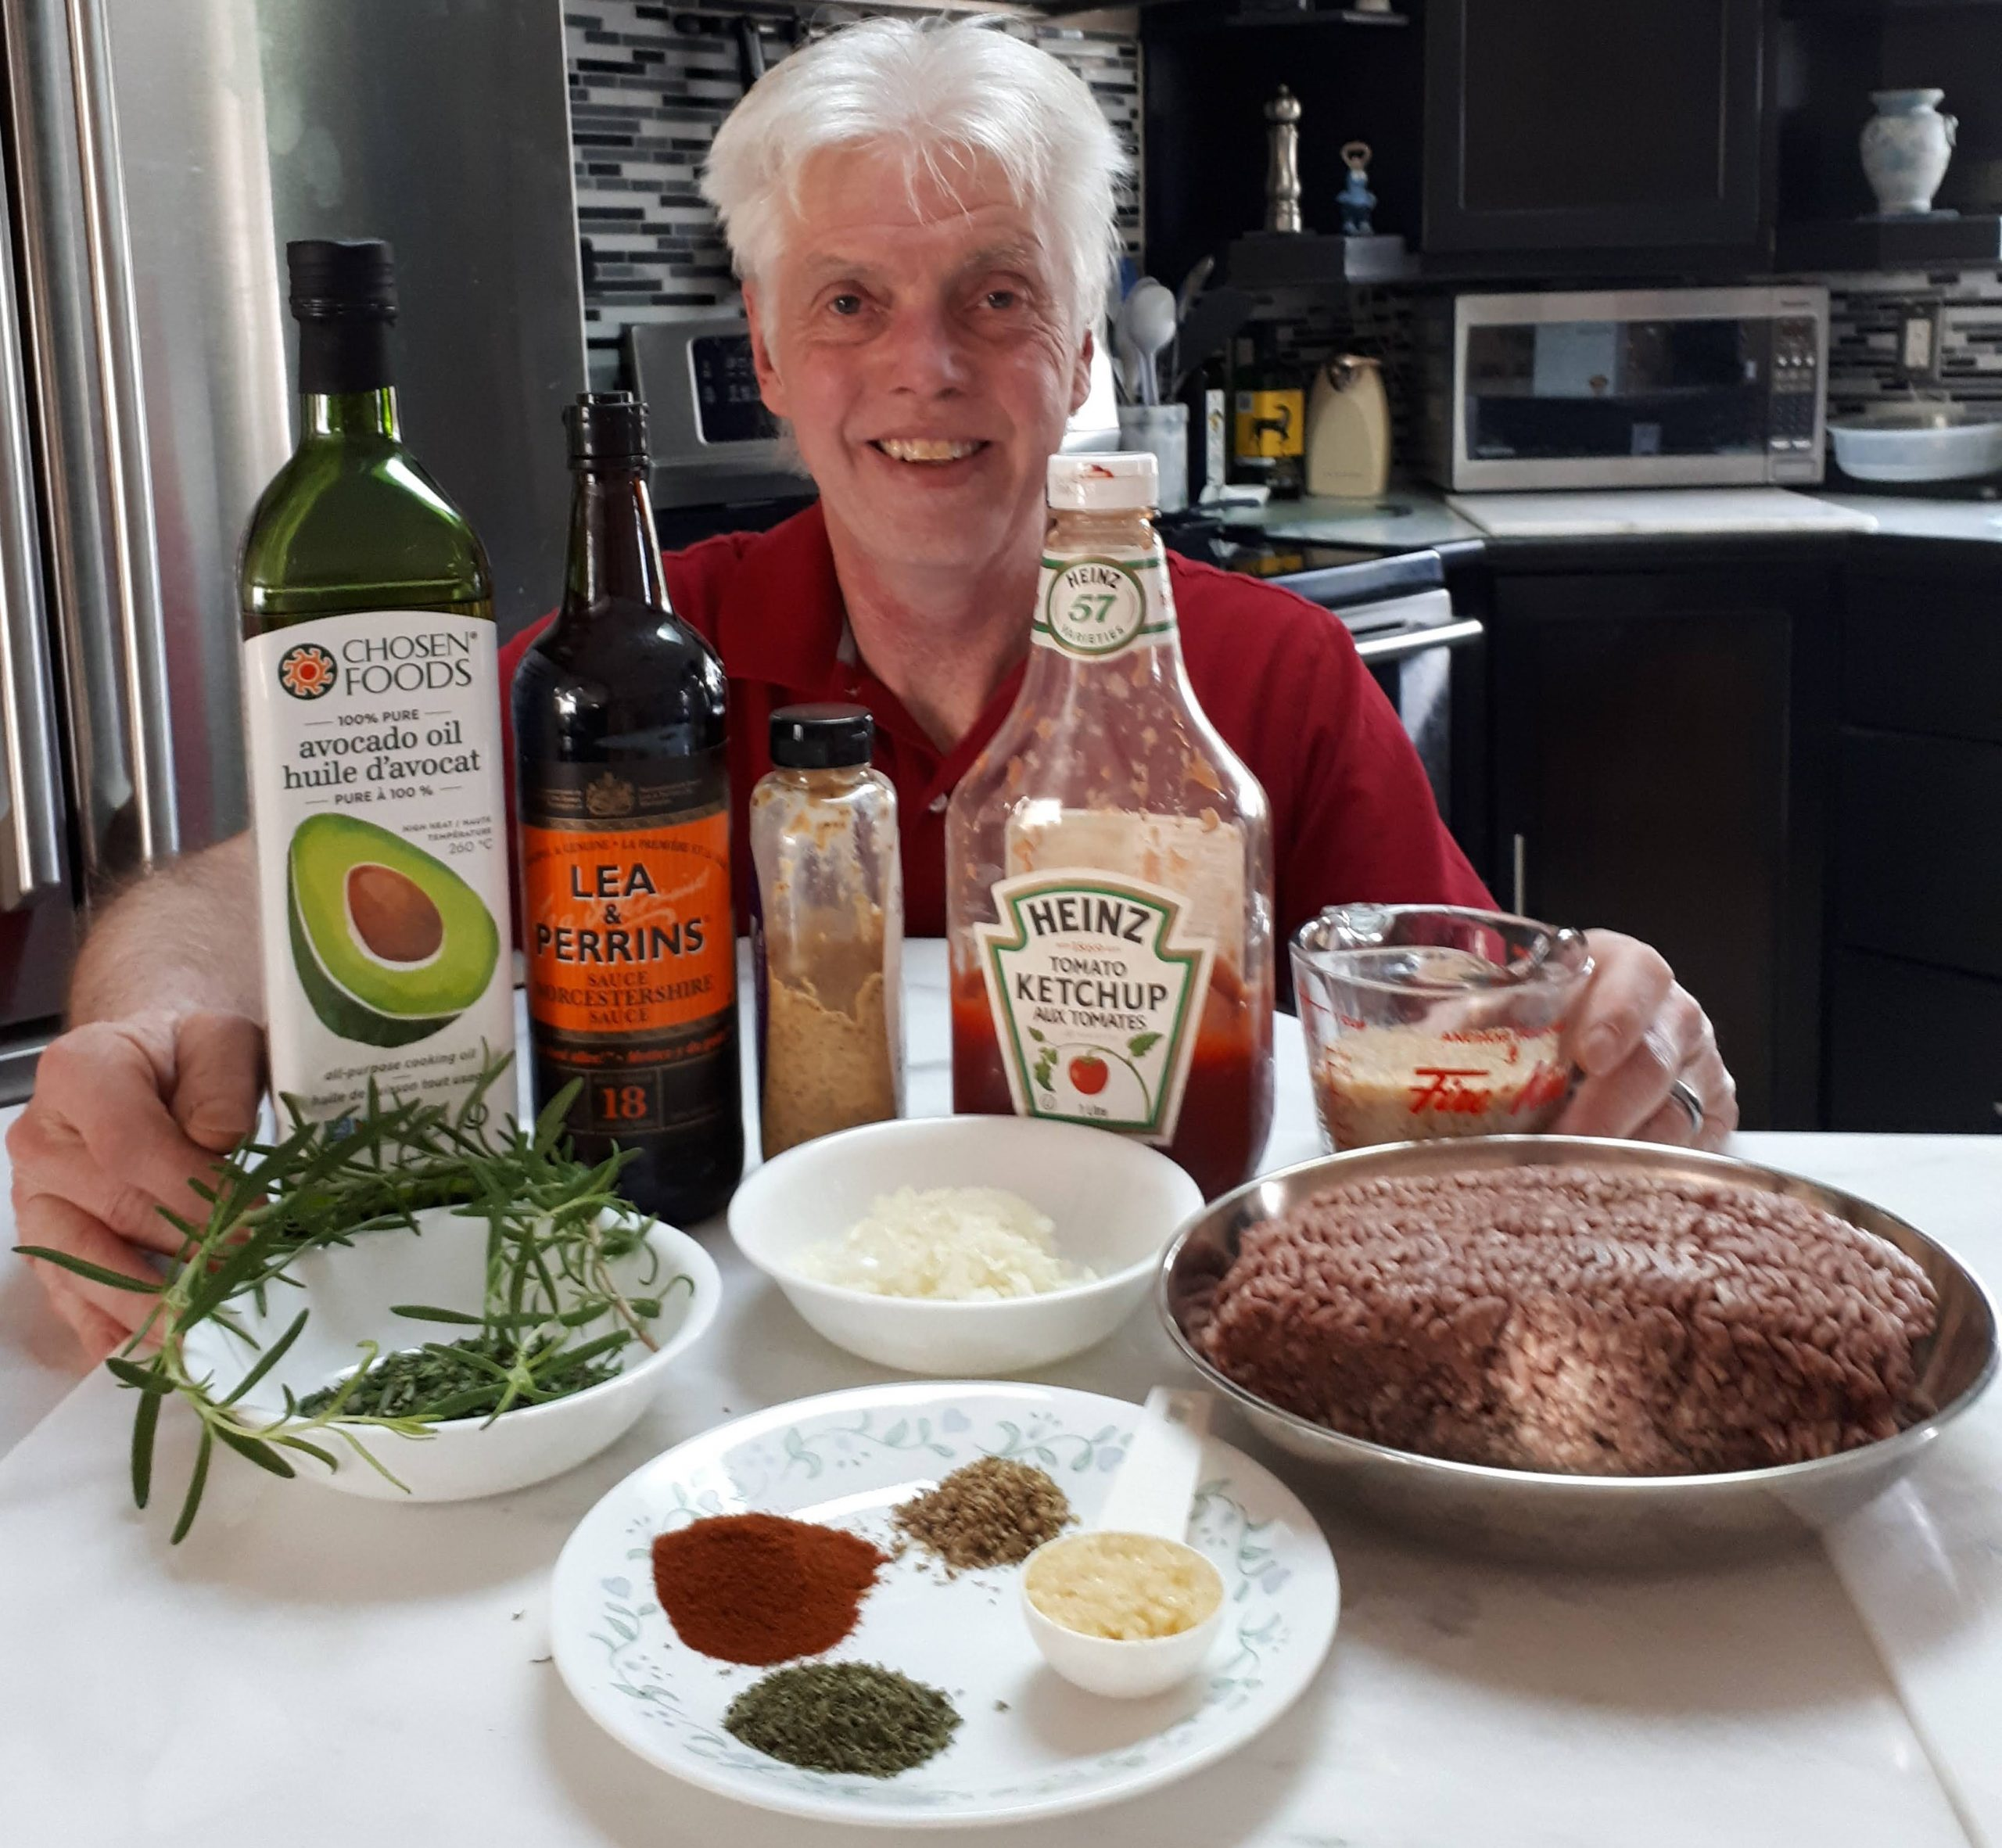 how to grill a healthy burger,how to grill a hamburger,best way to grill a hamburger,healthy ground beef,how to grill a burger in the oven,how to grill a burger on the stove,healthier ways to cook,how to grill a healthy hamburger,burger seasoning,gourmet burgers,burger recipes,healthier grilling,the healthiest cooking method,healthy grilled beef,healthy burger recipes with ground beef,how to grill a healthy burger using rosemary,how to cook a healthy burger,best way to grill a juicy burger,how to grill a burger on gas grill,how to cook a gourmet burger,top ten tips for healthy grilling and barbecuing,5 tips for healthy grilling,how to BBQ a healthy burger,how to barbecue a healthy burger,how to BBQ a burger,how to BBQ a hamburger,how to barbecue a burger,how to barbecue a hamburger,how to grill a gourmet burger,healthy recipes,healthy eating,grilling meat,healthy burger,healthy grilling,healthiest way to cook meat,healthiest way to grill meat,healthiest way to grill,healthiest way of grilling,healthiest grilling,healthier way of grilling,a healthier way of grilling,healthy ways to grill meat,healthy way to grill,6 ways to have a healthier barbecue,keto, keto friendly, paleo, paleo friendly,how to grill a burger in a cast iron skillet,cast iron skillet,hamburger,burger,hamburger patty,rosemary,mouthwatering burger,mouthwatering hamburger,delicious burger,delicious hamburger,best burger,best hamburger